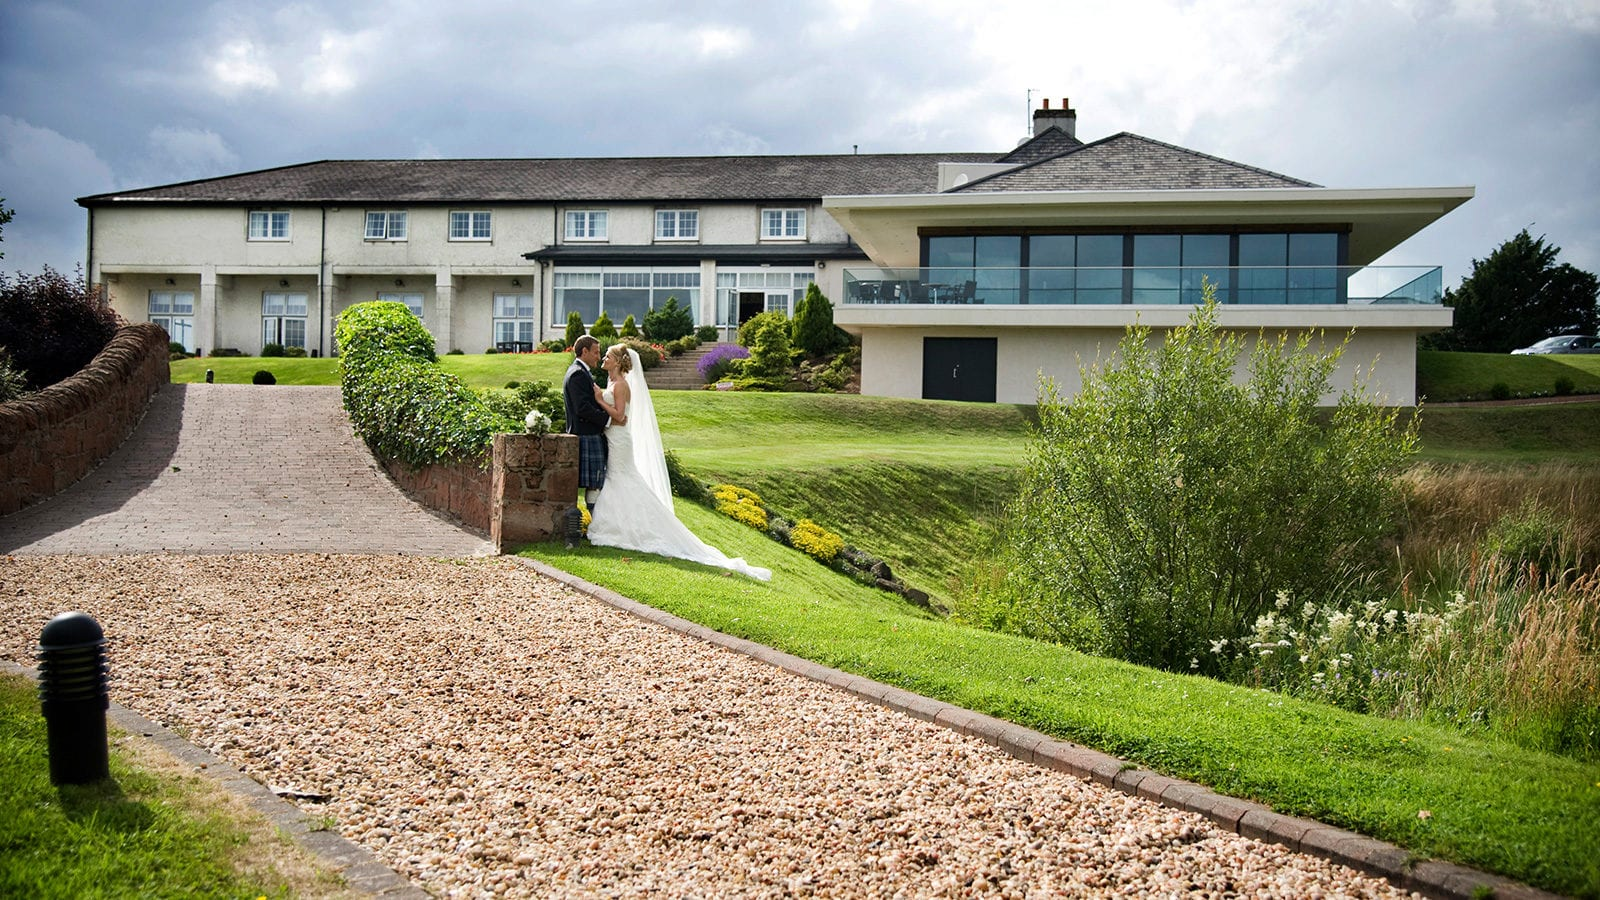 Marry At Lochside An Alternative Venue For Your Marriage Ceremony Within The Stunning Glen Caol Suite Overlooking Loch Of Lowes